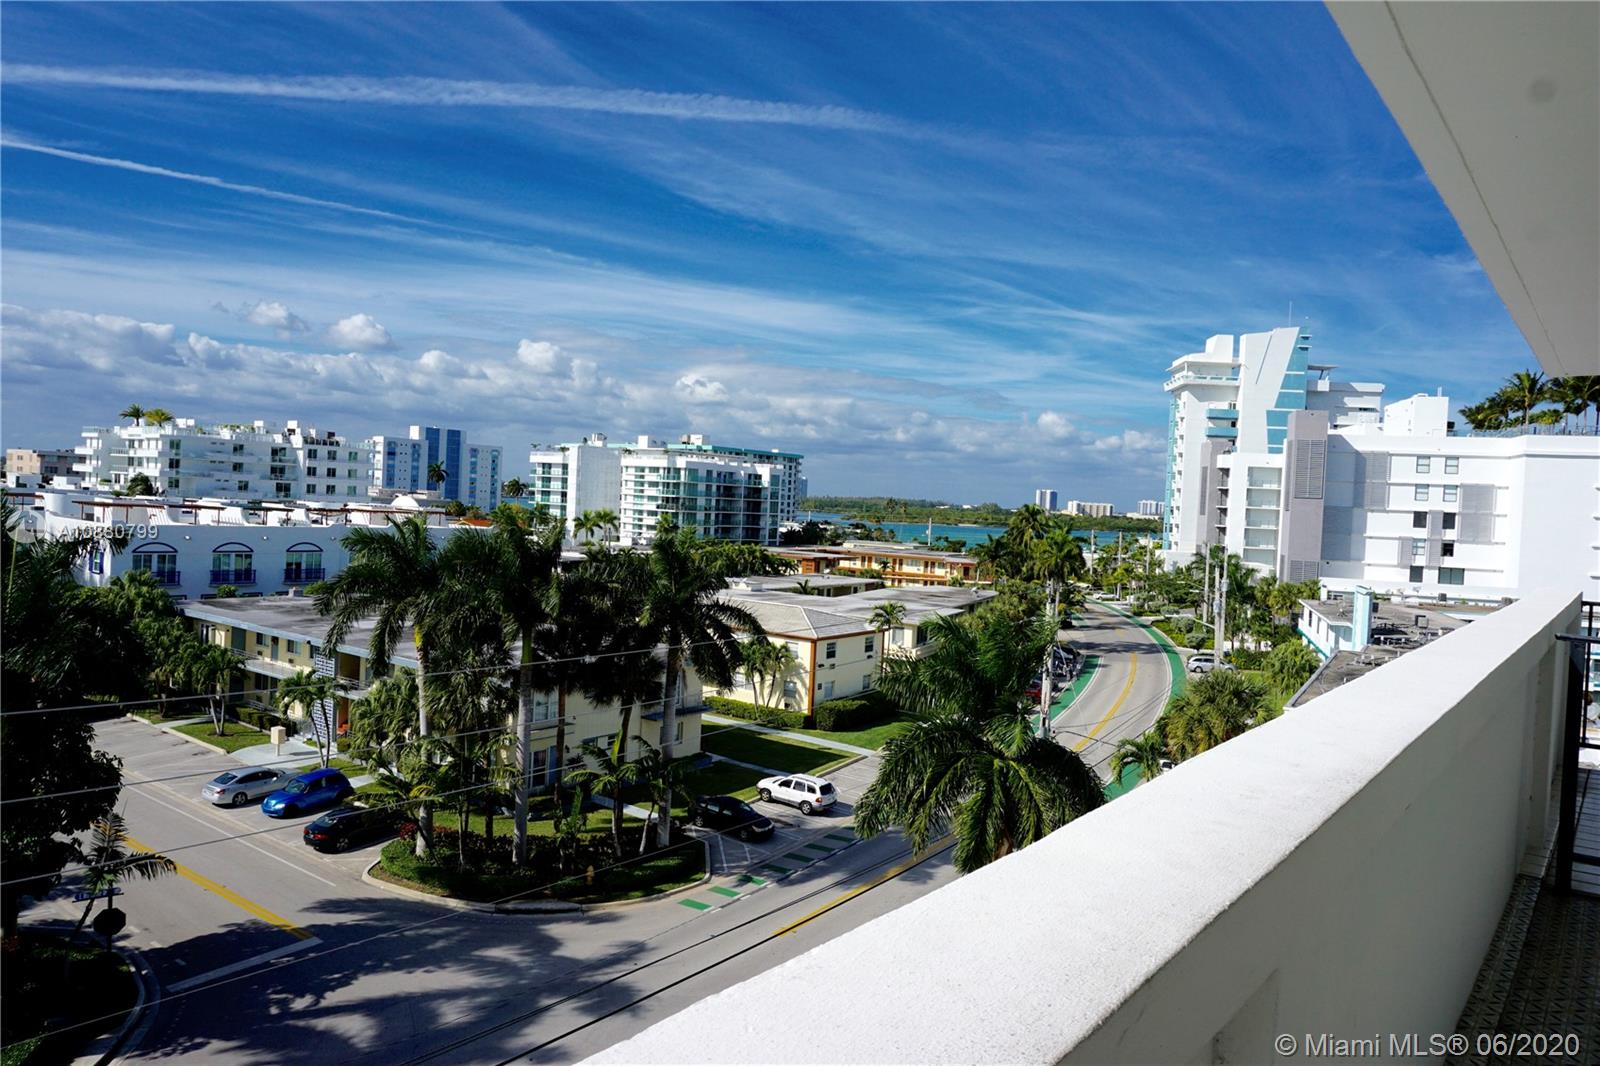 Quaint & Spacious Condo in Bay Harbor Islands -- MUST SEE!!! 1 Bedroom / 1.5 Baths.. ALL Impact Windows and Sliding doors.. Large Balcony .. Pictures of unit are limited due to privacy reasons.. Large Living, Dining, and Bedroom.. Enough space to create an open kitchen.. Stainless steel appliances.. corner views of bay.. guard at lobby.. enjoy the pool with bay view just feet away!!! Each floor has a laundry room! Great as a vacation home or primary residence! Rented at $1,800/mo.